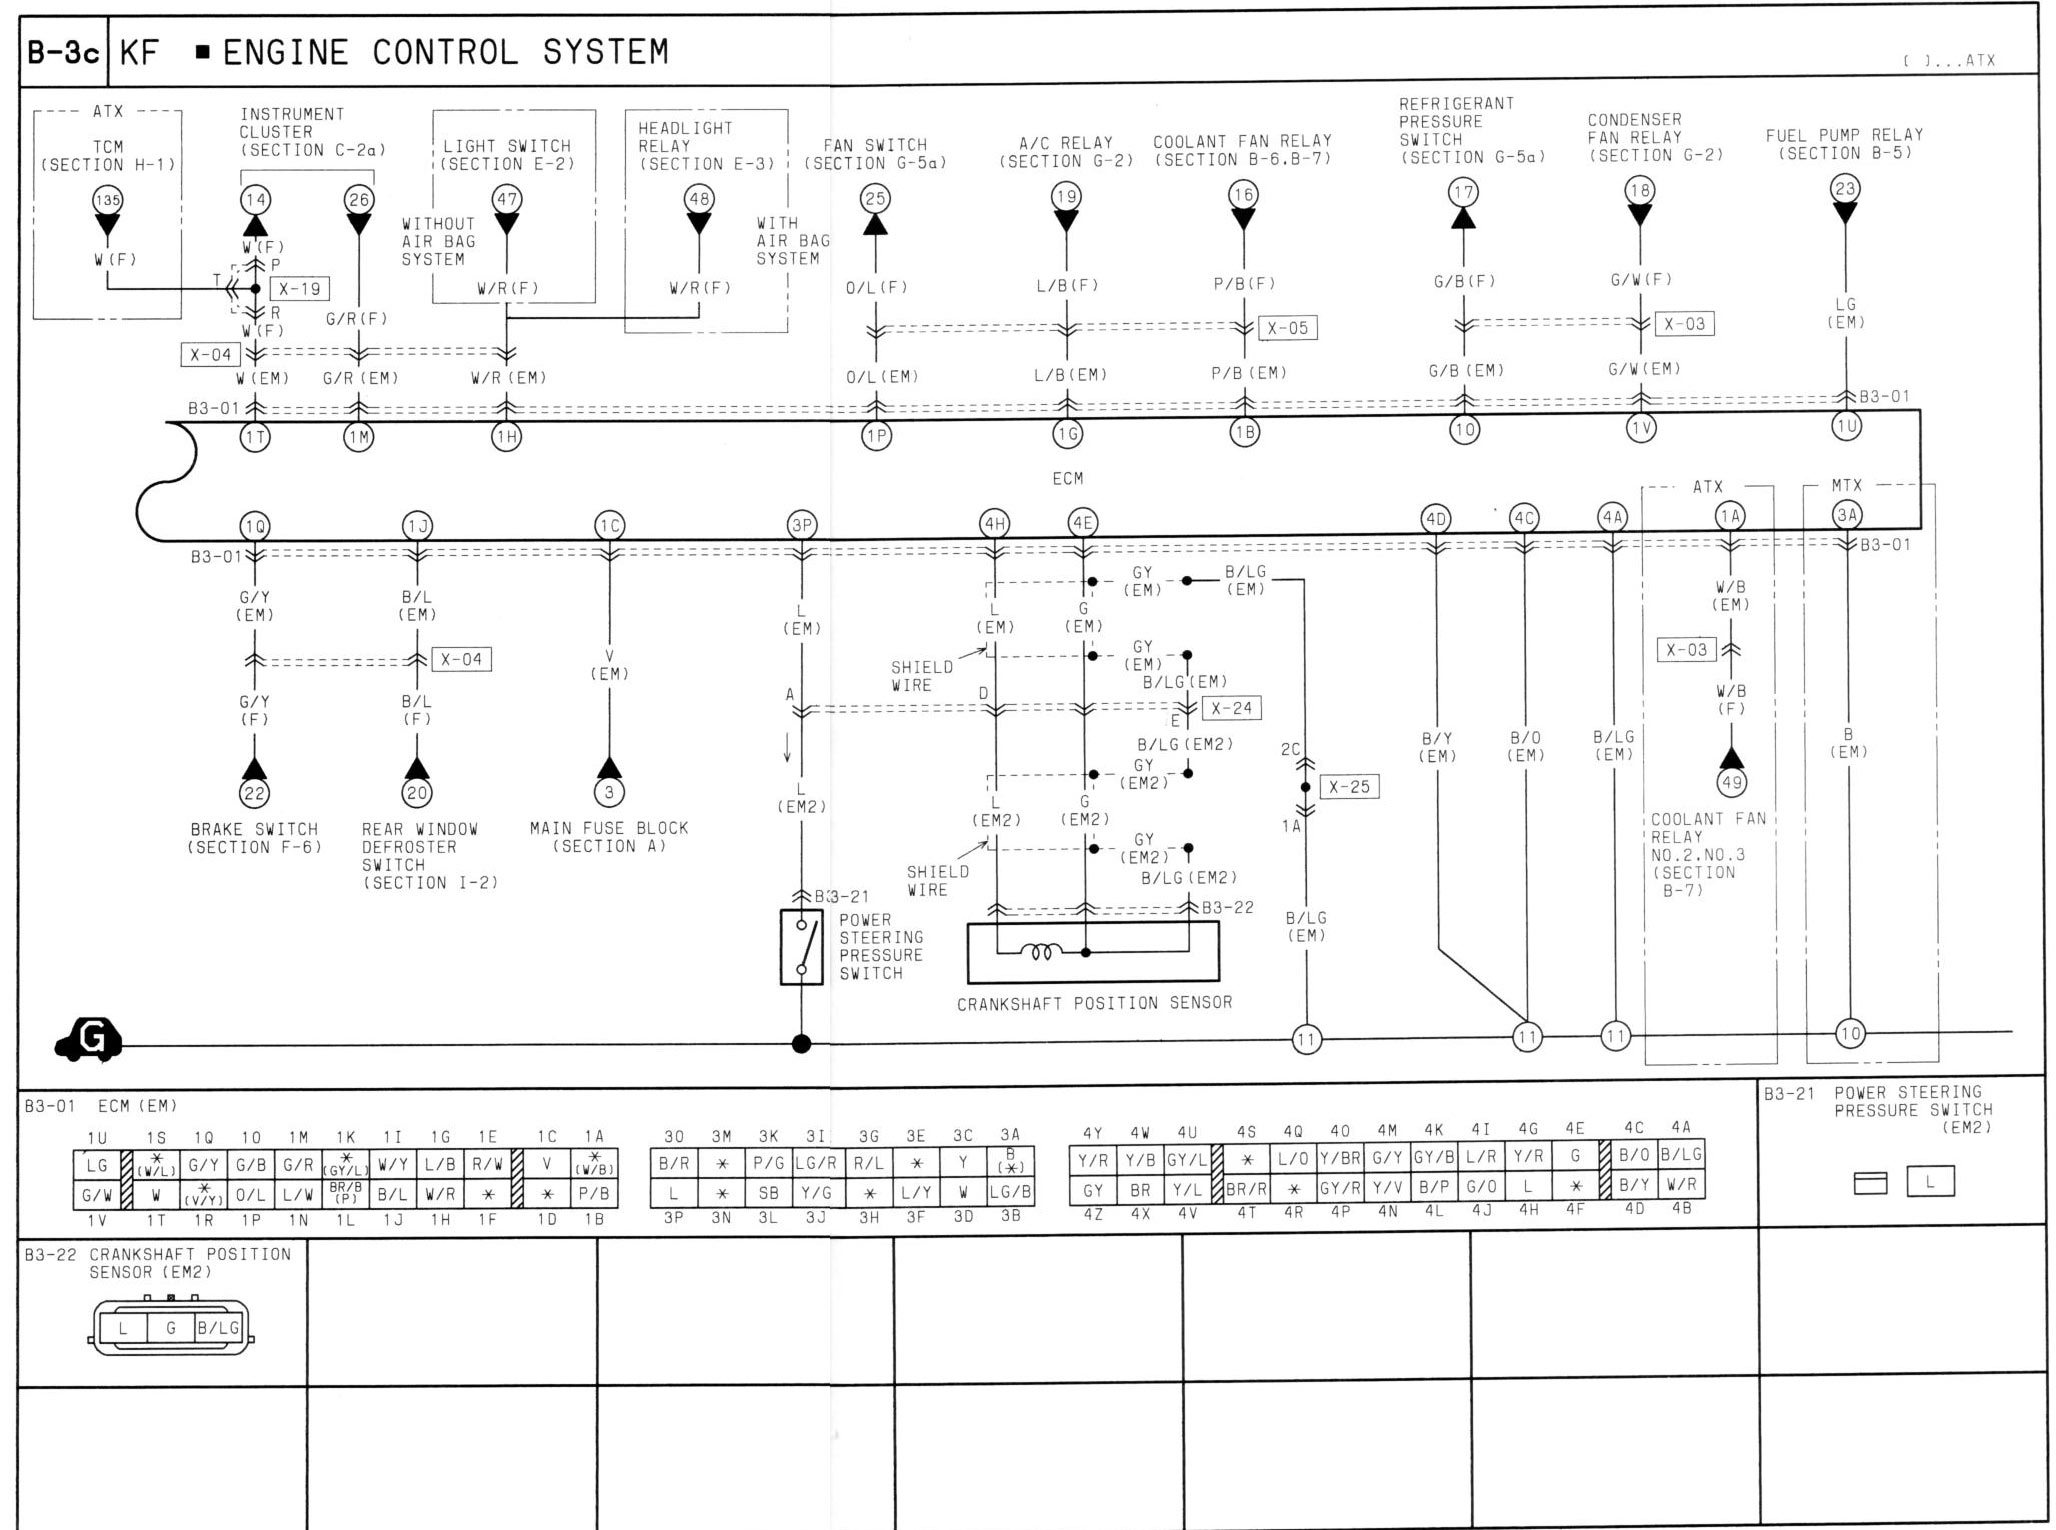 lantis 2 0 v6 wiring diagram needed astinagt forums mazda 323f electrical diagram mazda 323f wiring diagram #6